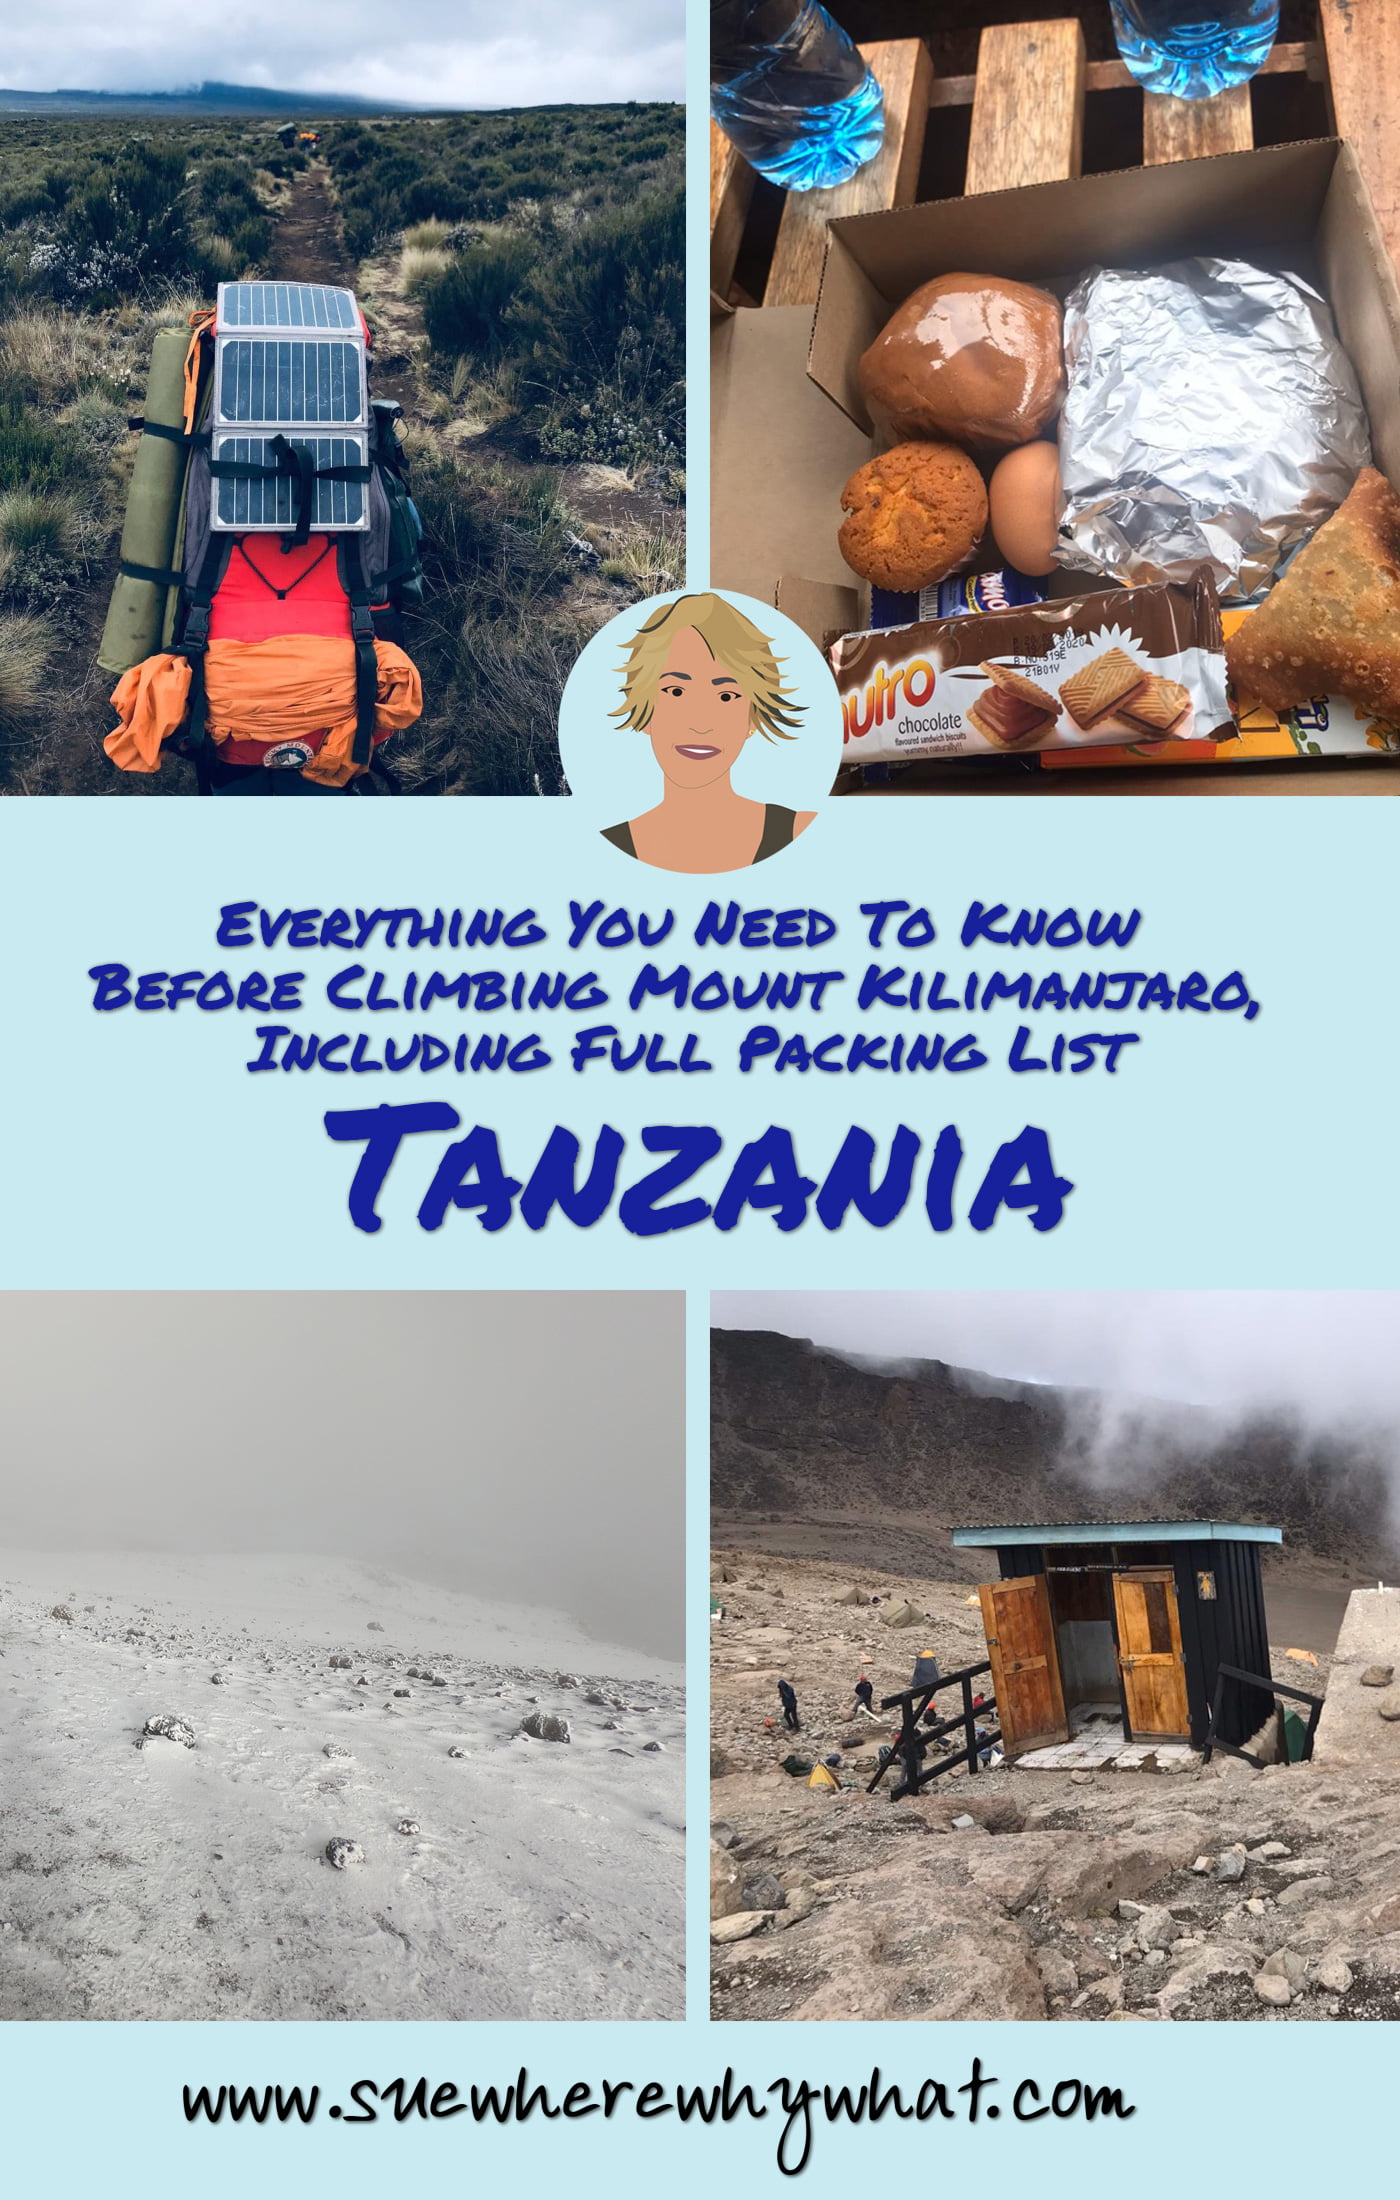 Everything You Need To Know Before Climbing Mount Kilimanjaro, Including Full Packing List